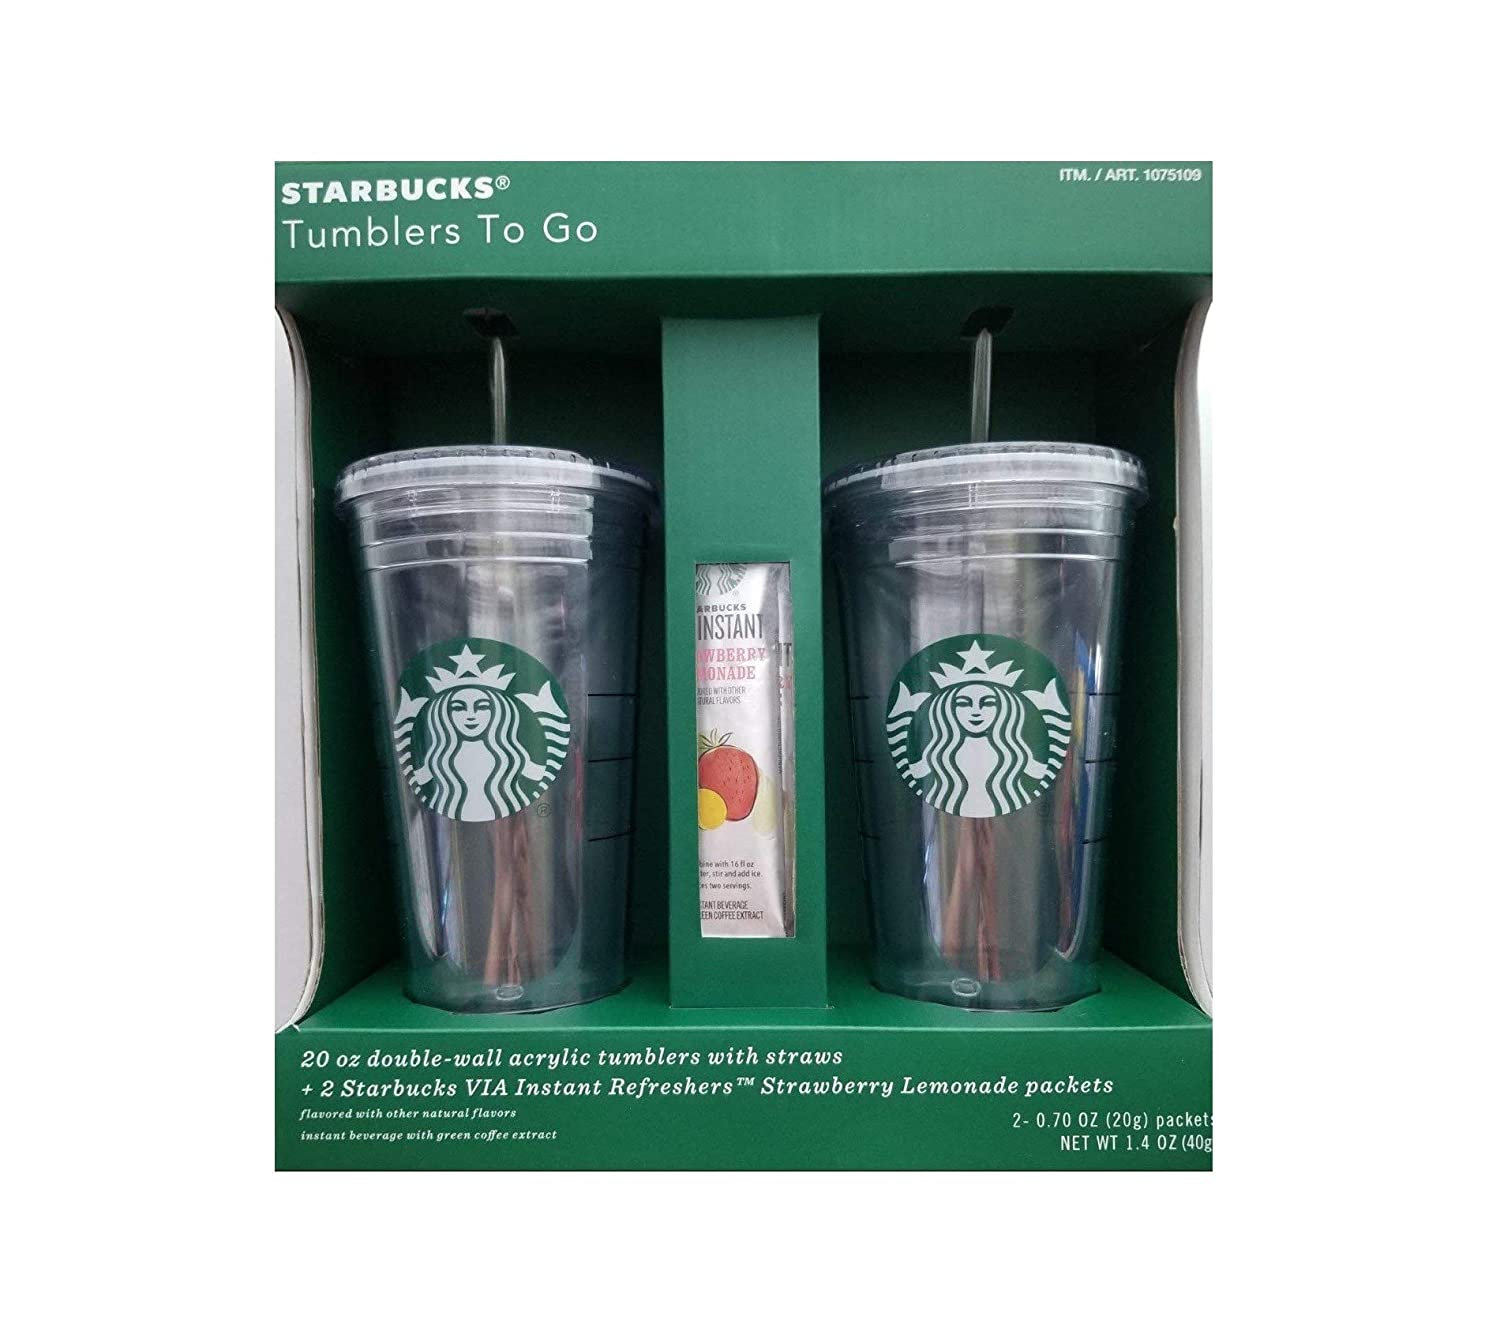 Costco Starbucks 2 Pc 20 Oz Double Wall Acrylic Tumblers With Straws